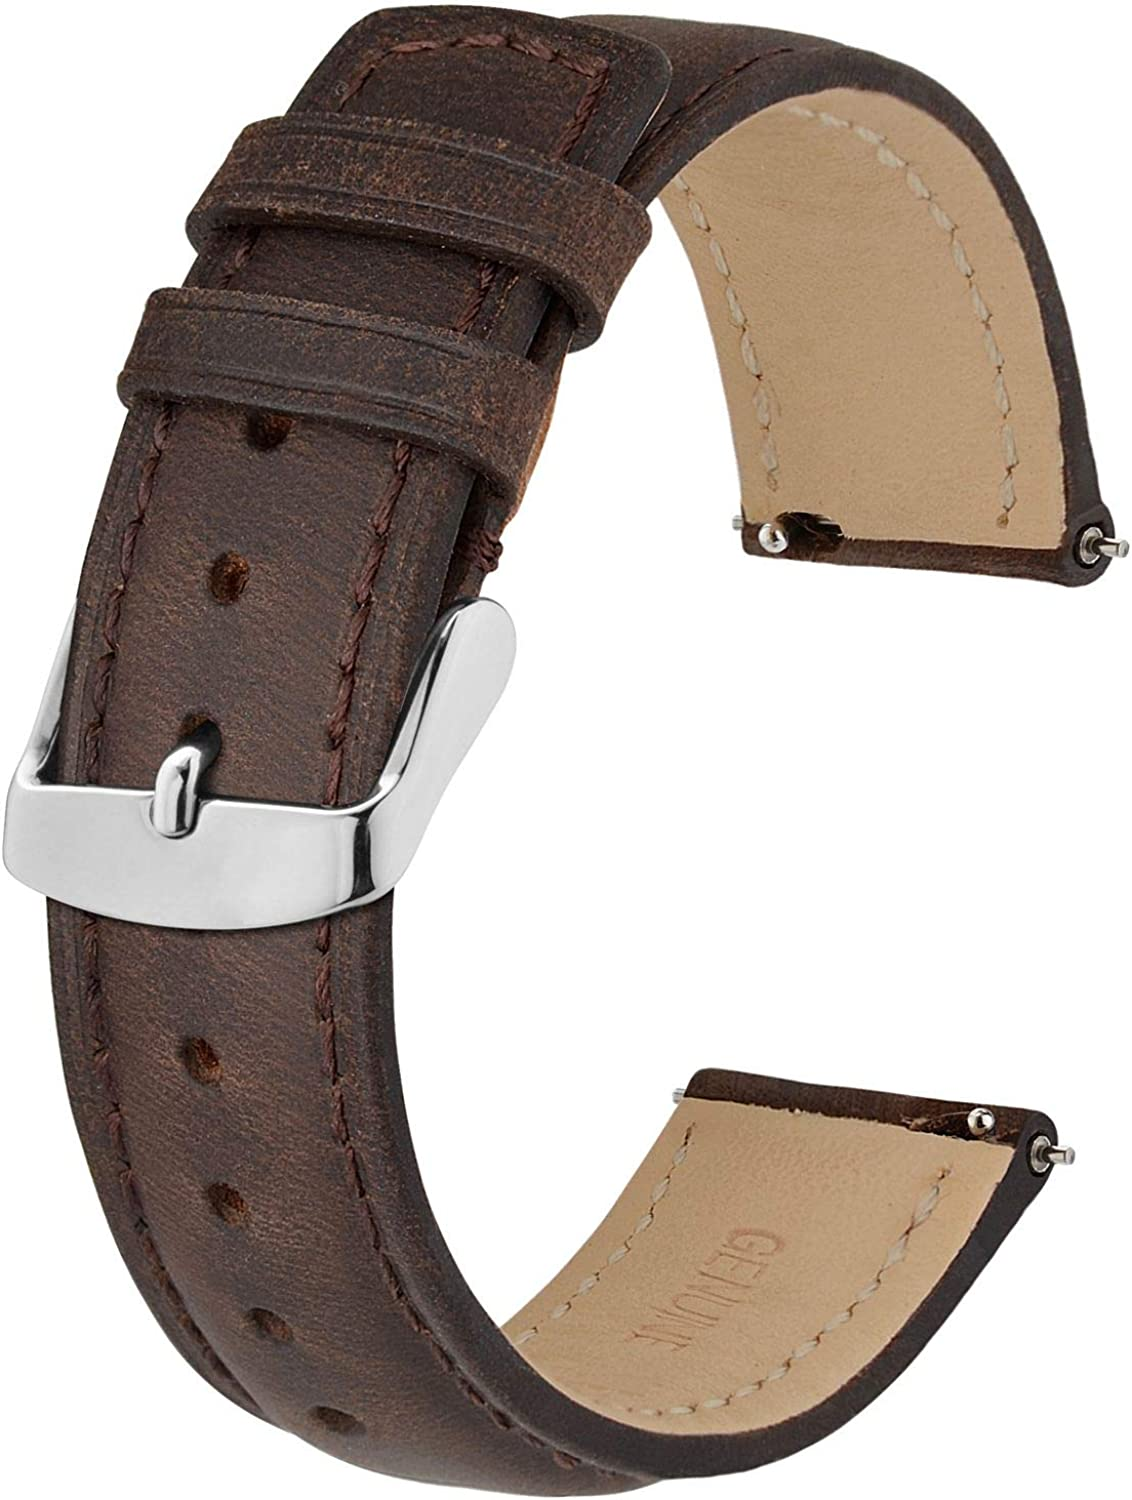 Daily bargain Ranking TOP1 sale BISONSTRAP Watch Strap with Quick Release Leather Replace Retro